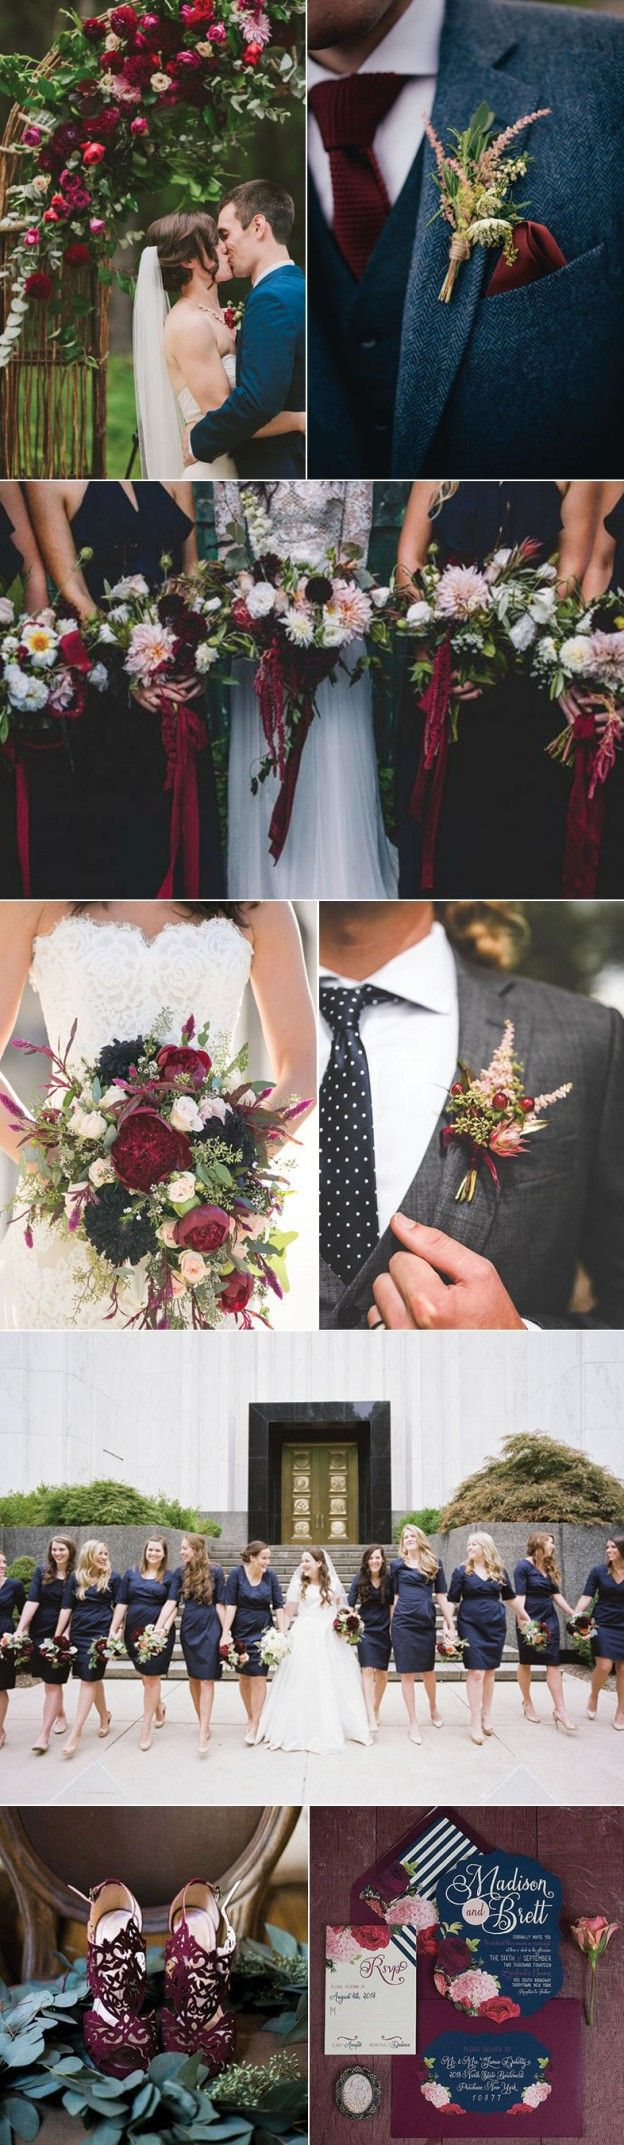 Ideas for a Marsala and Navy Blue Wedding